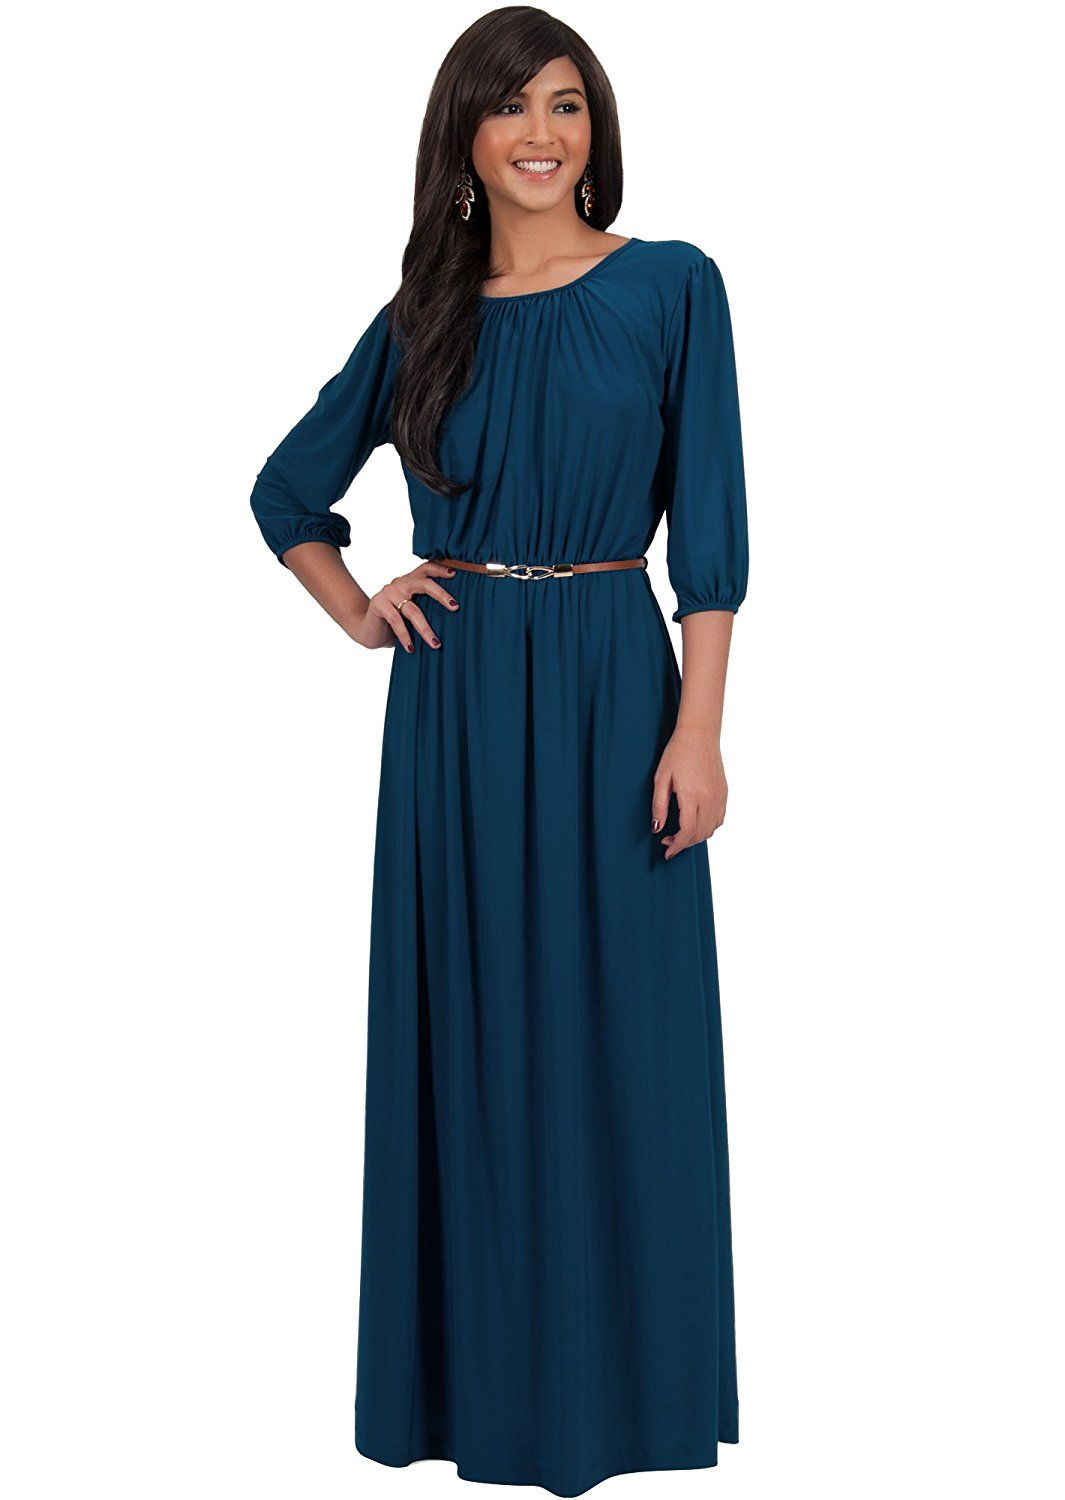 Koh Koh Womens Long 3 X2f 4 Sleeve Pleated Vintage Solid Fall Winter Maxi Dress At Amazon Women S Clothing Maxi Dress Teal Maxi Dress Maxi Dress With Sleeves [ 1500 x 1065 Pixel ]